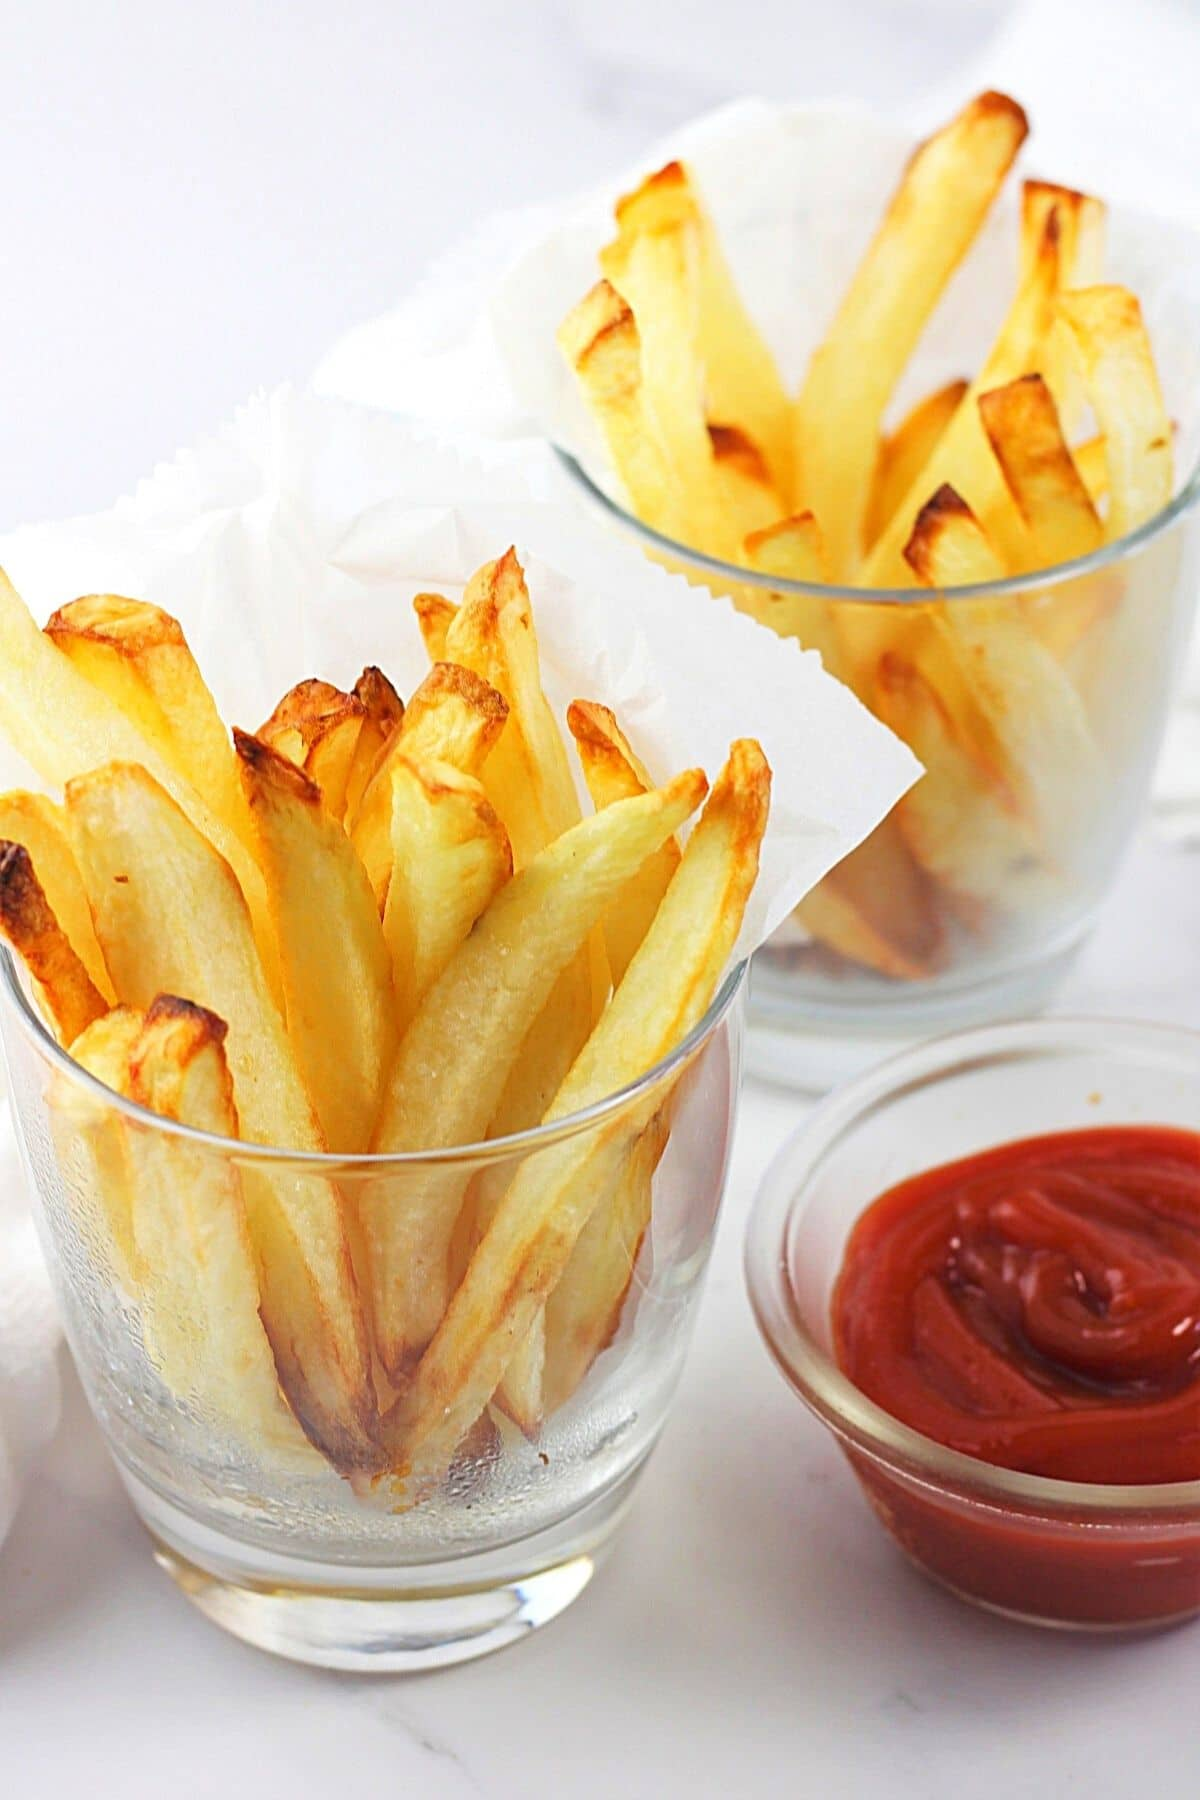 two glasses filled with air fryer homemade French fries and a small bowl of ketchup on the side